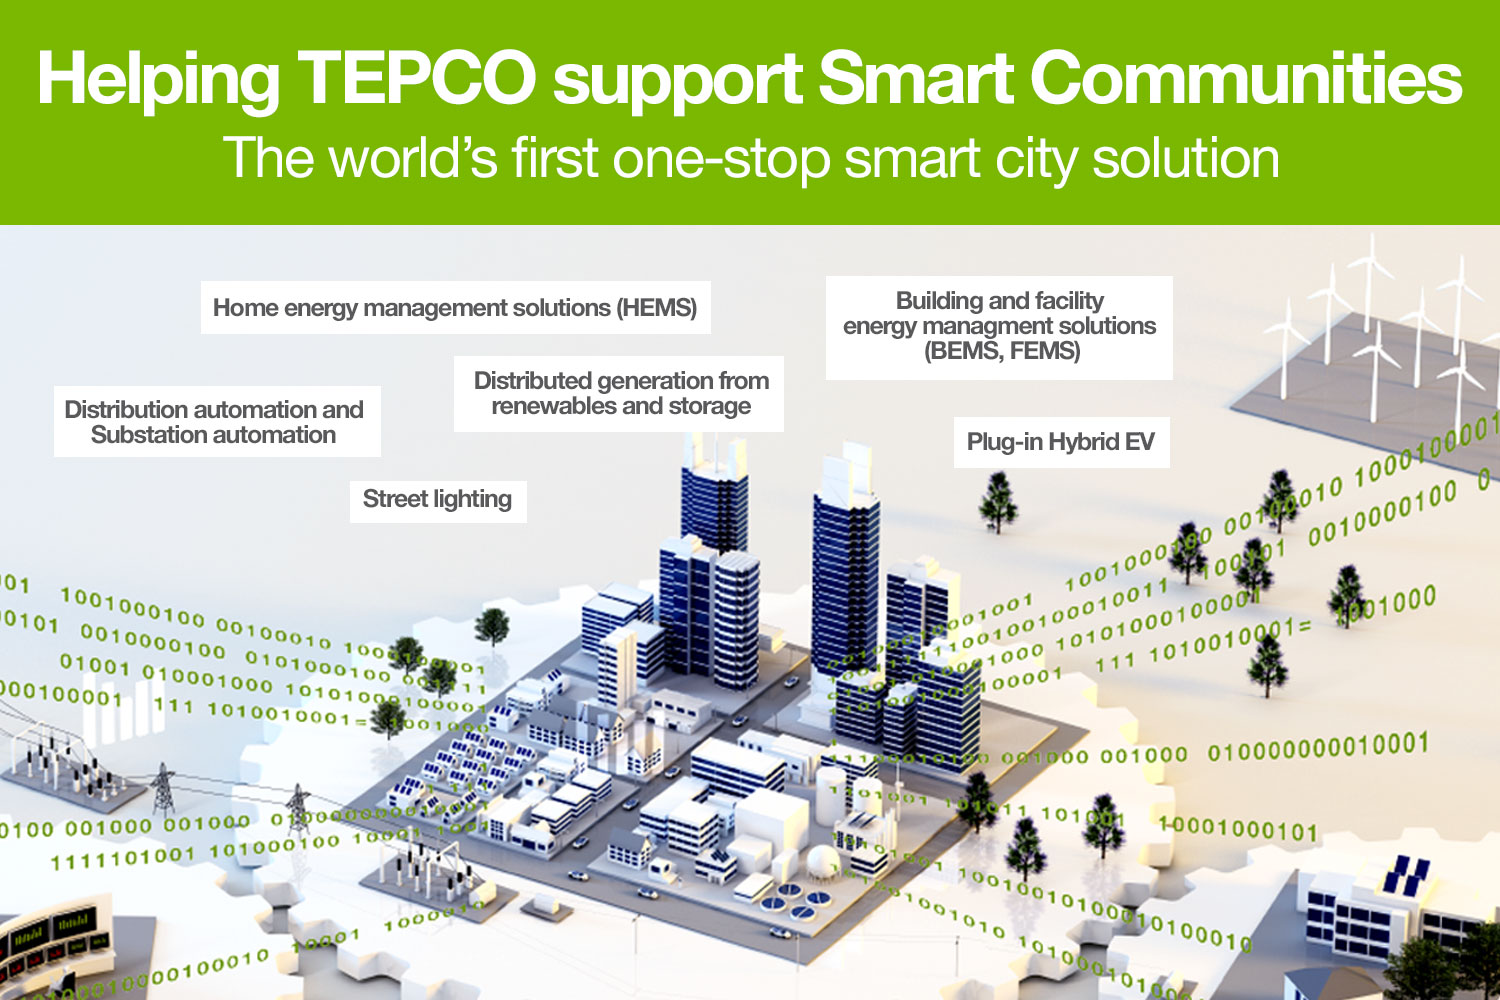 TEPCO and Landis+Gyr's Gridstream® enable Tokyo to build a true smart city